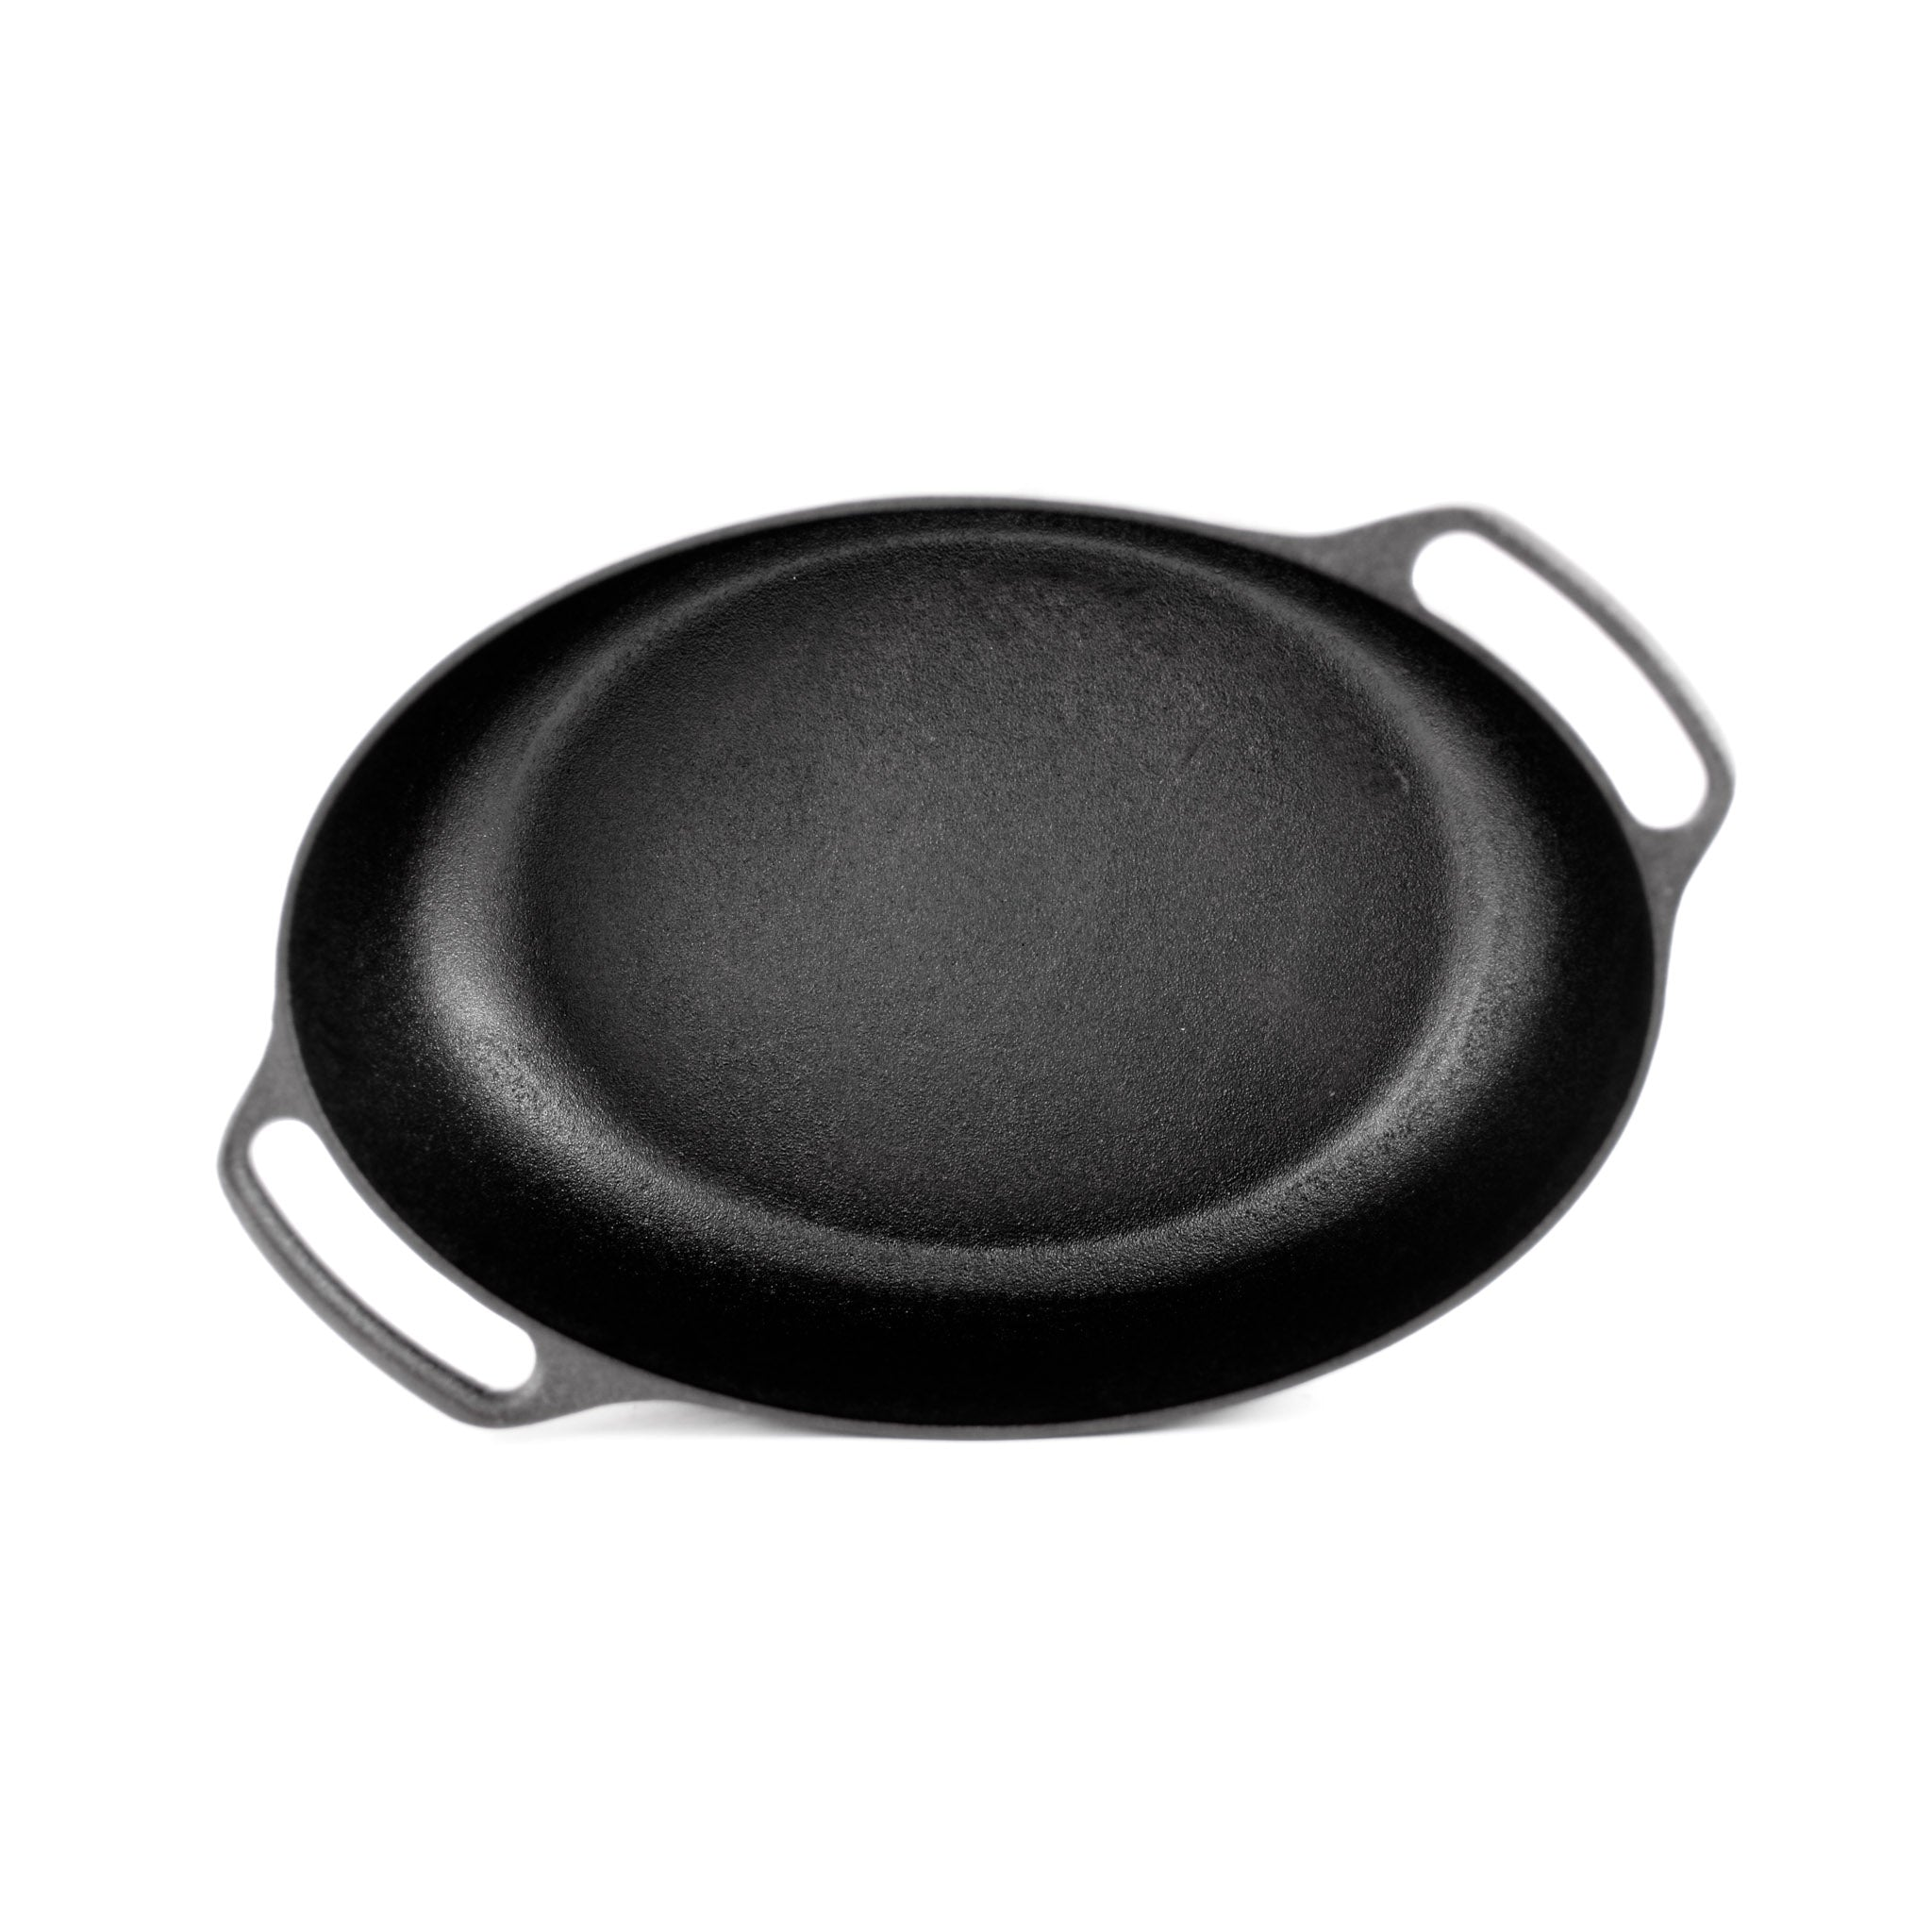 Skeppshult Cast Iron Oval Casserole Dish